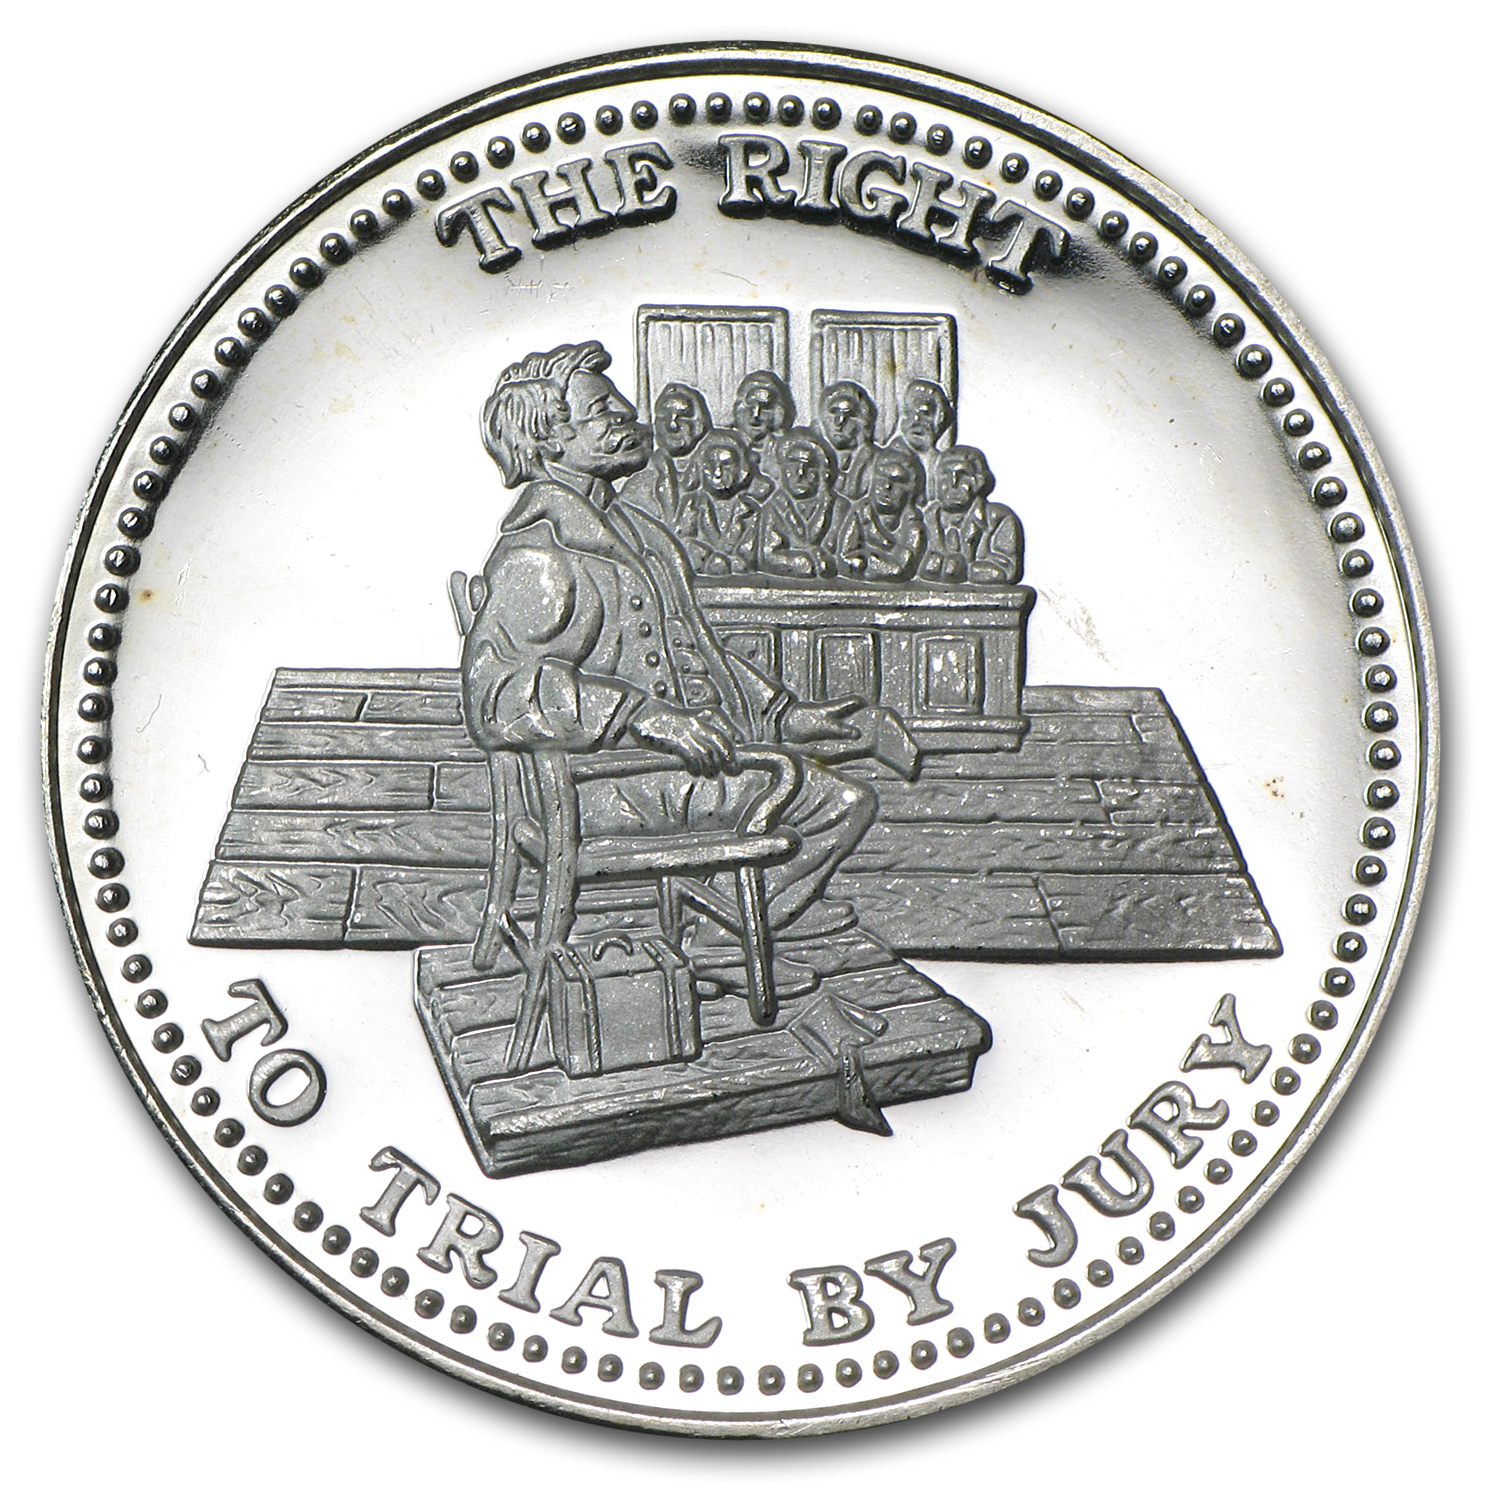 1 oz Silver Round - Johnson Matthey (Right to Trial by Jury)